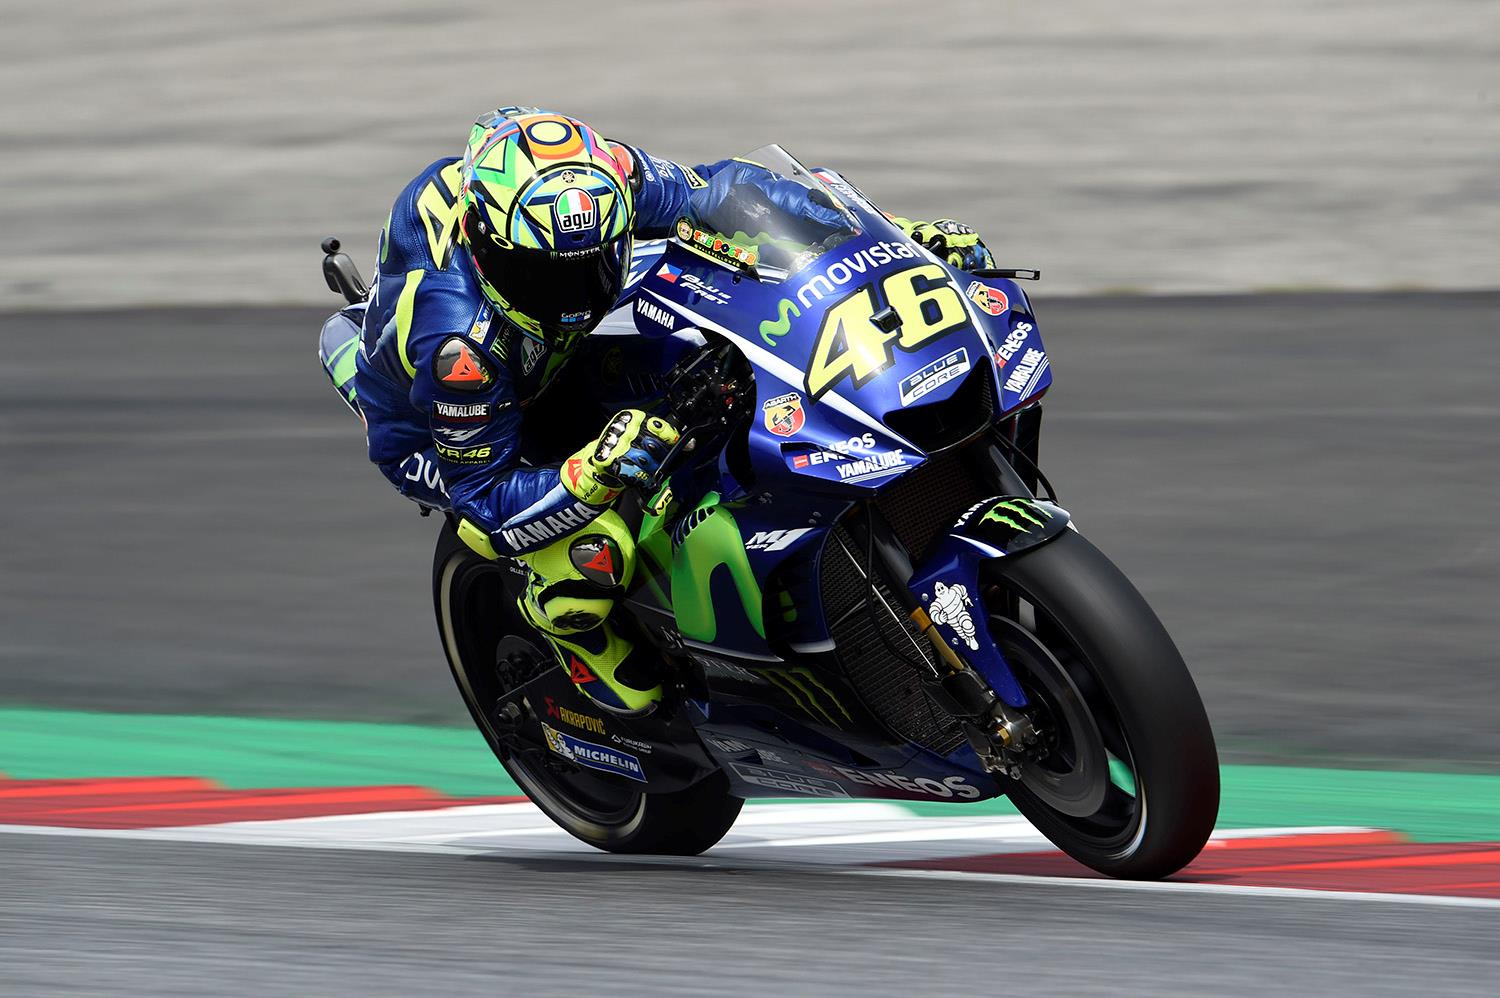 Motogp Rossi Rides Prototype 2018 Bike At Misano Test Mcn